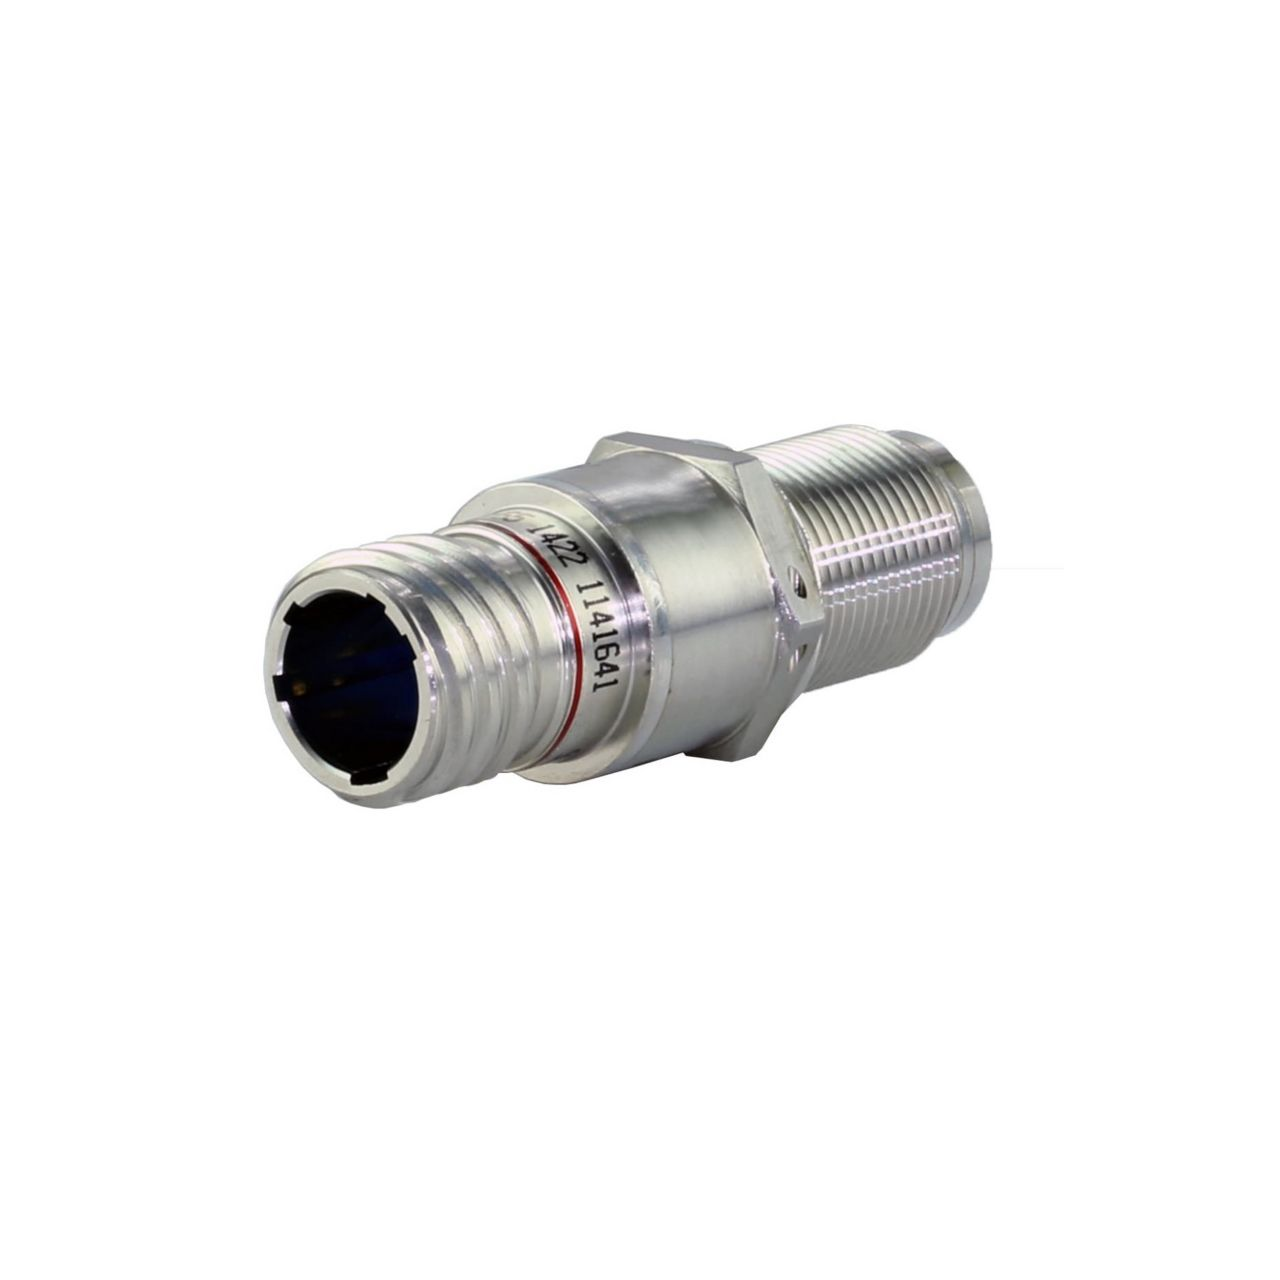 General Aerospace Proximity Sensor (GAPS) Series